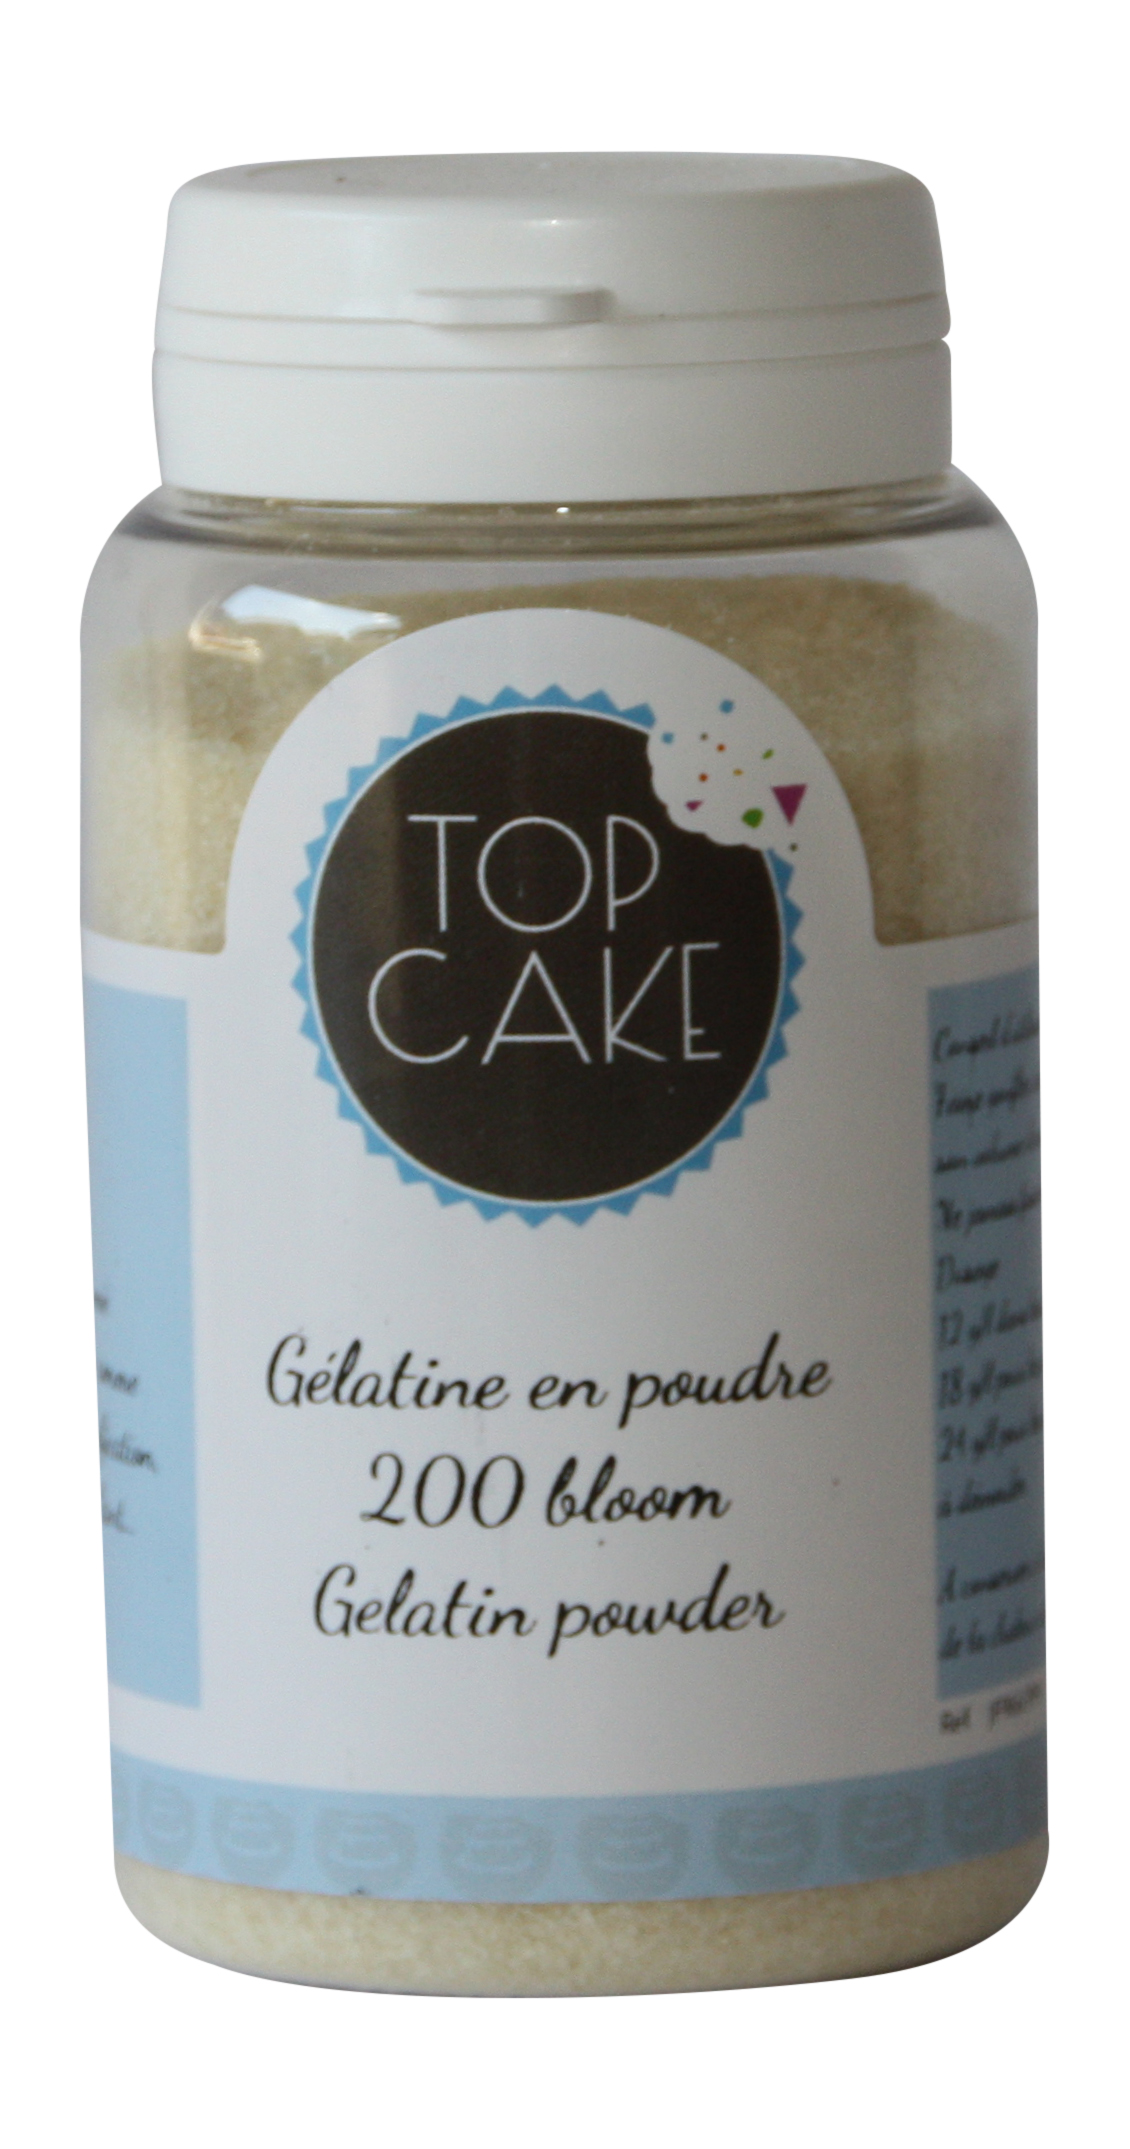 Gelatin powder 200 blooms x 100g - TopCake